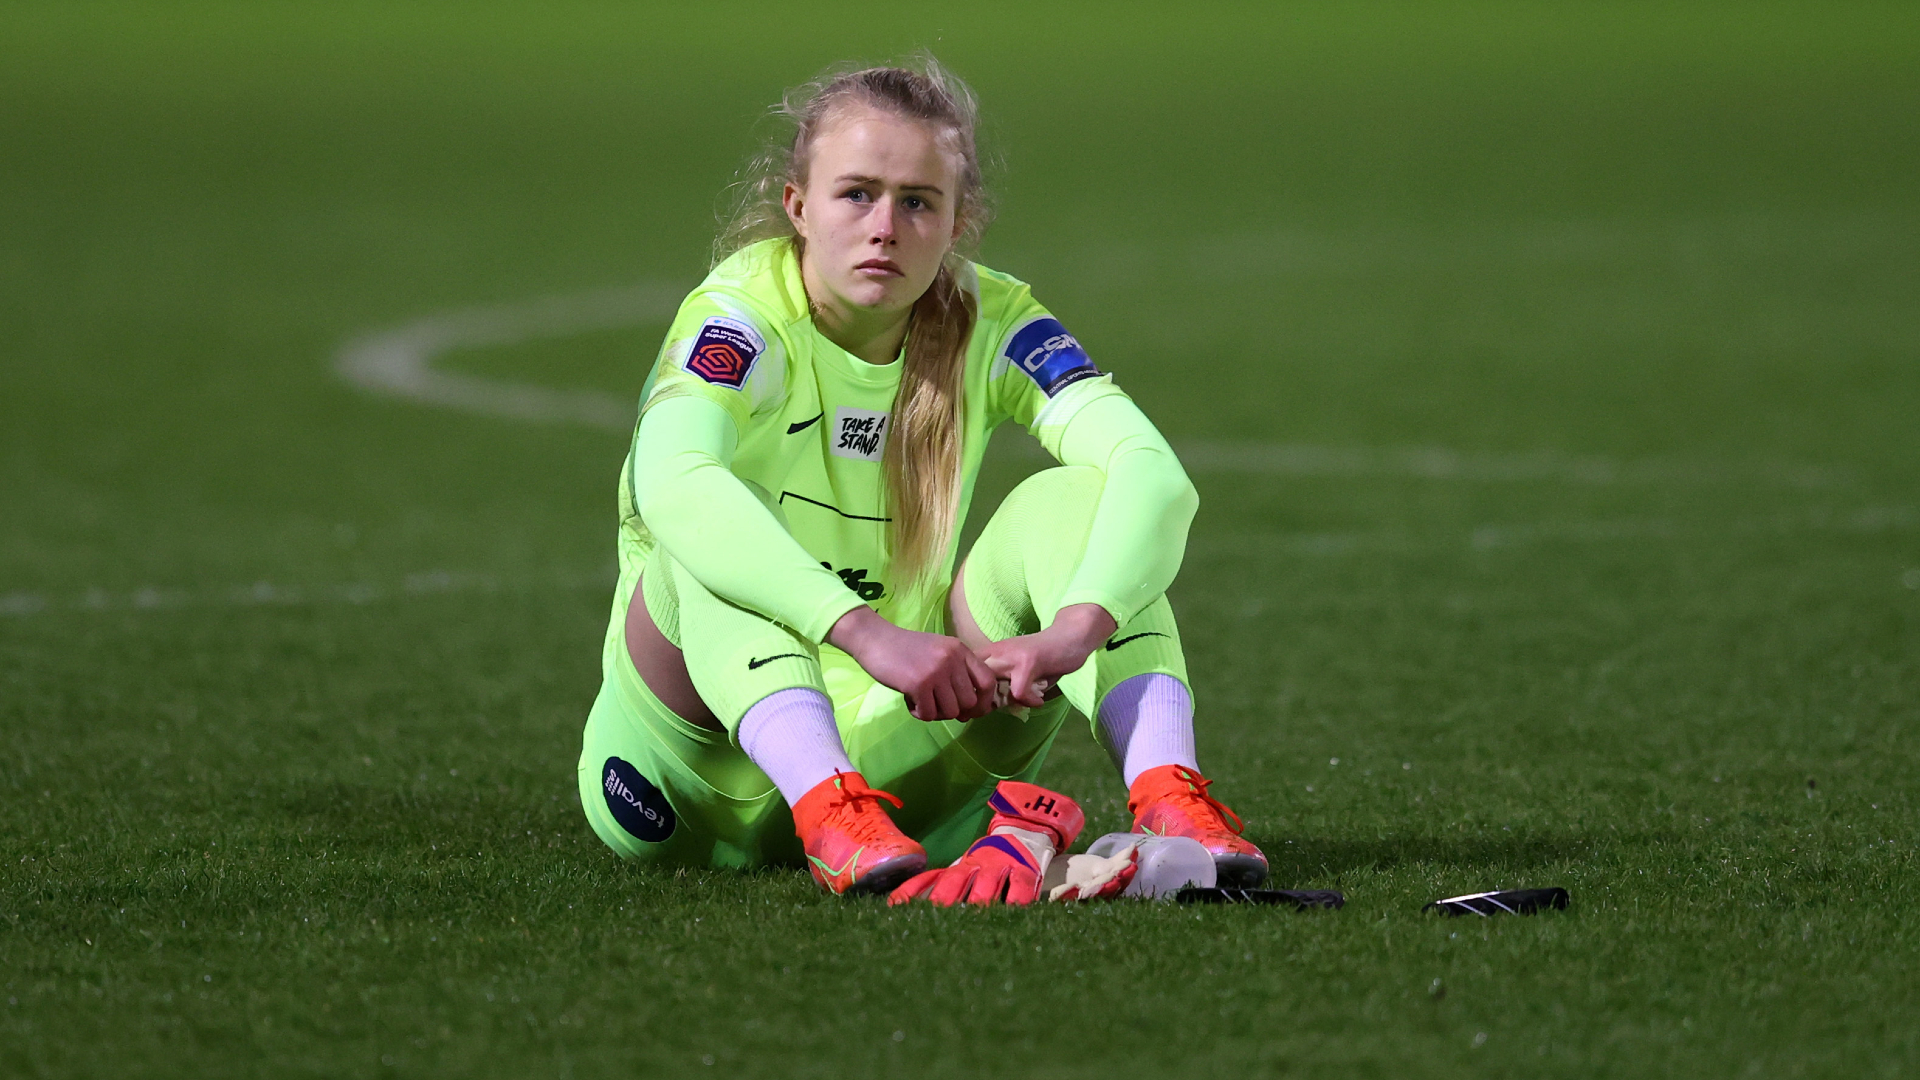 'The girls are going to warm up and she's in tears' - FA blasted for making Team GB cuts just before Birmingham-Everton clash